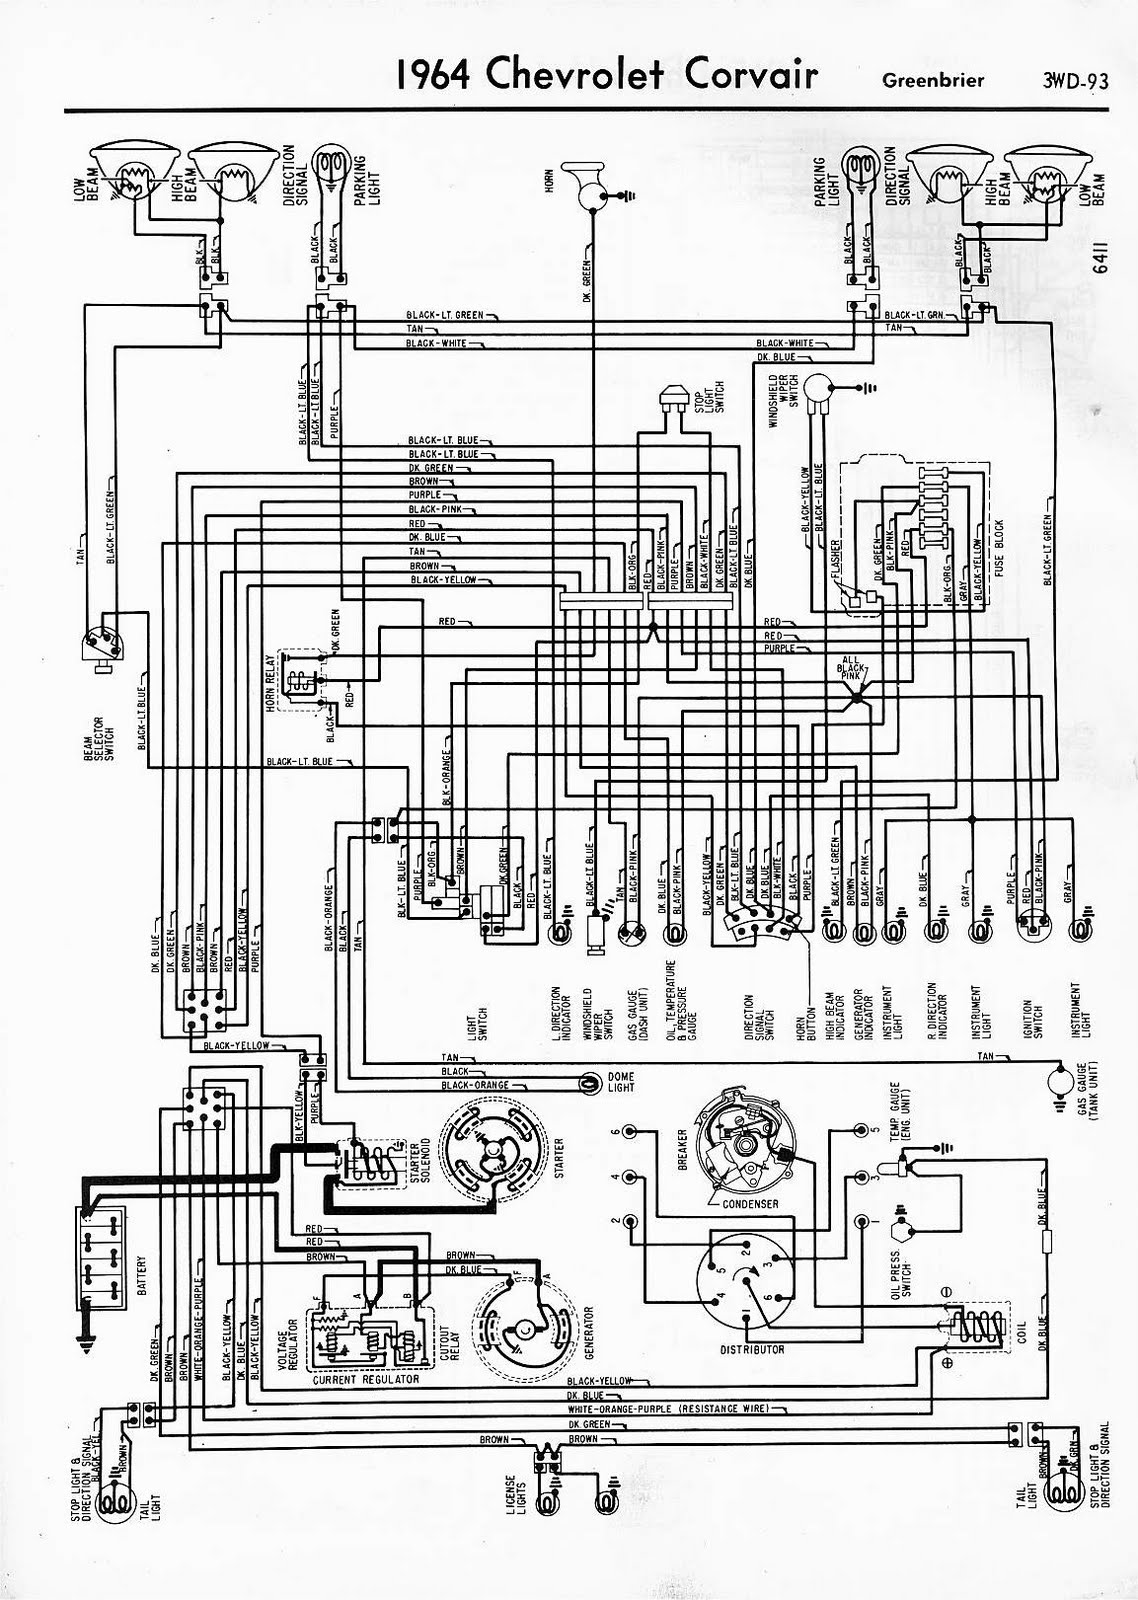 1976 Corvette Dash Wiring Diagram Viper 5305v 1964 Cluster Schematic Chevy Blog Electrical 1961 Corvair